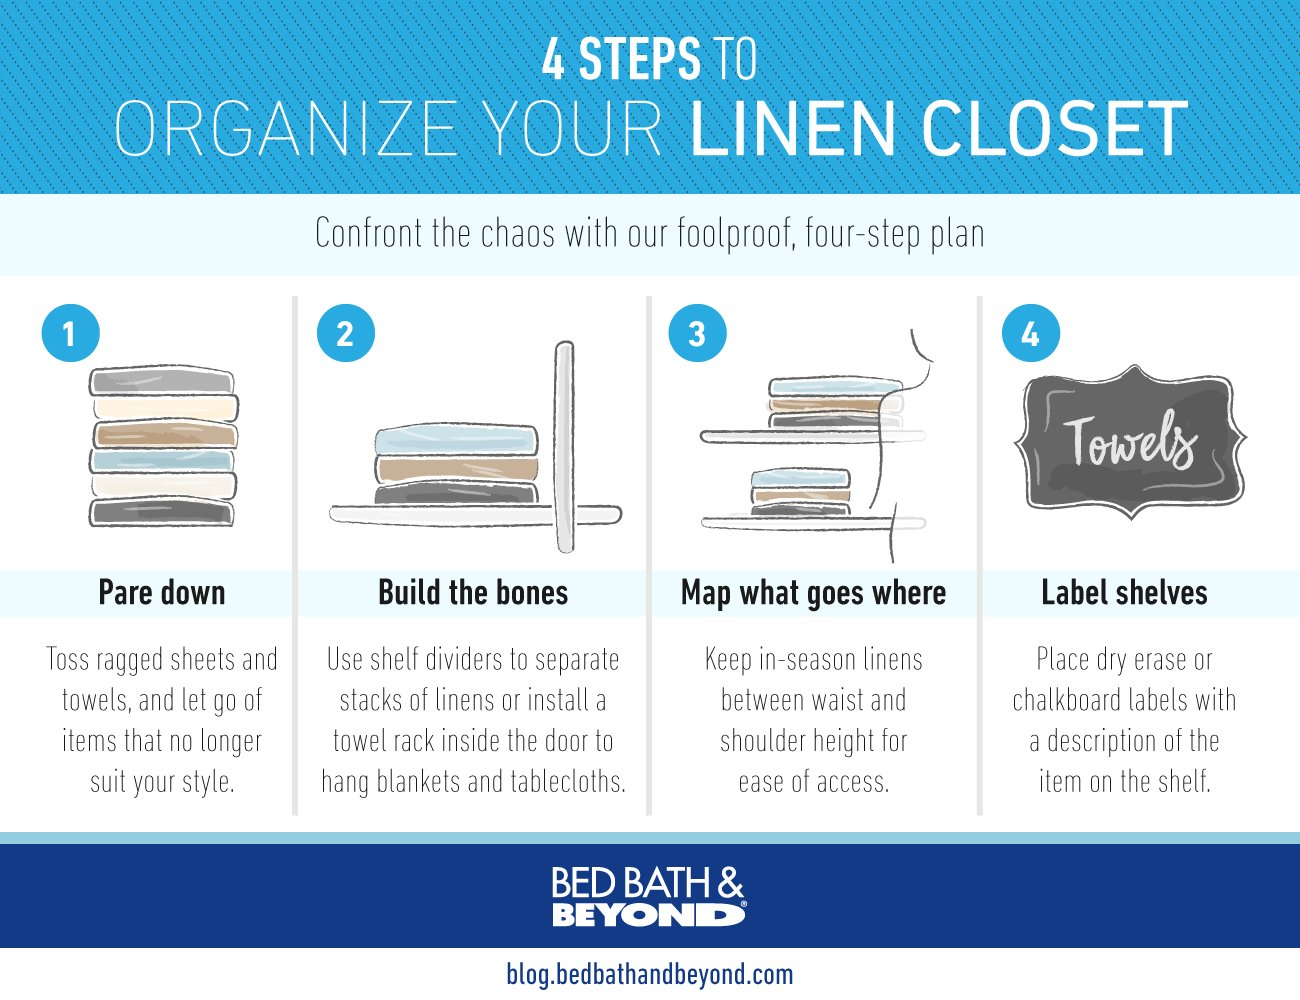 Bed Bath Beyond On Twitter How To Organize Your Linen